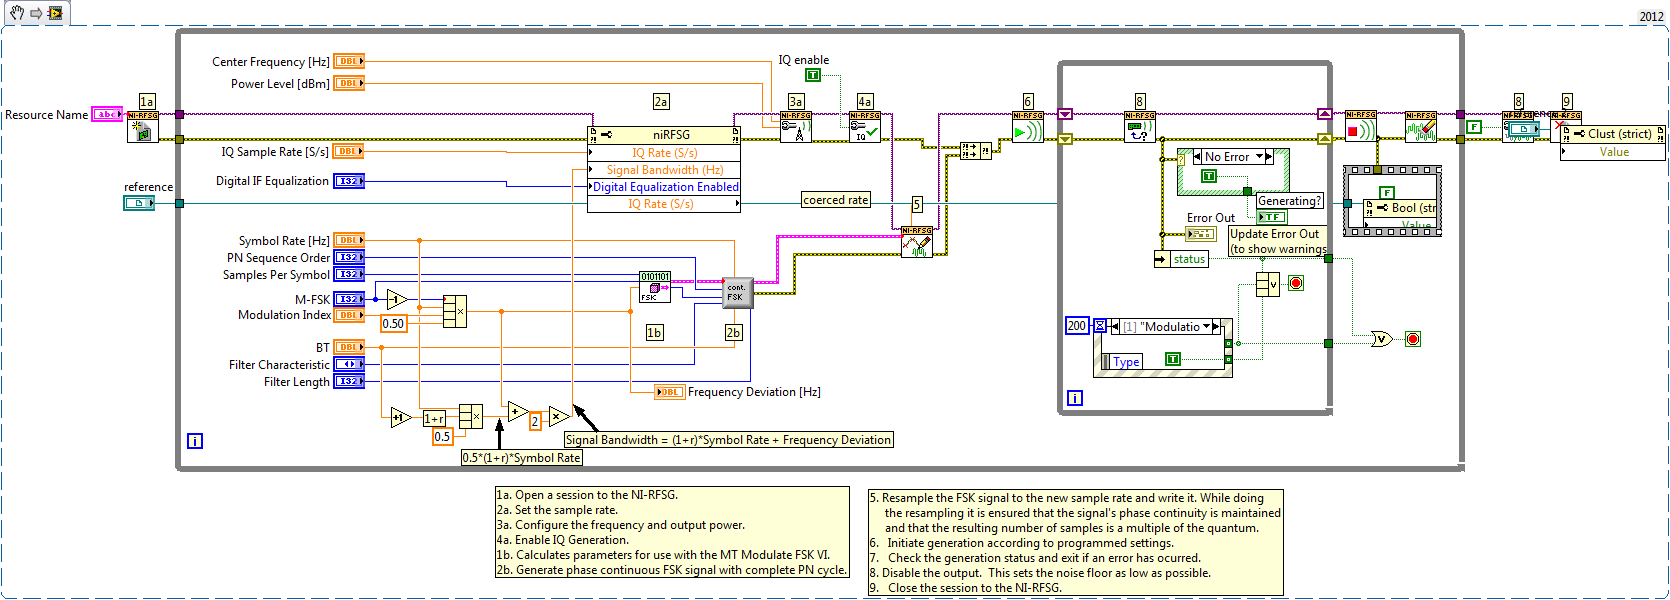 Frequency Shift Keying Digital Modulation with LabVIEW - NI